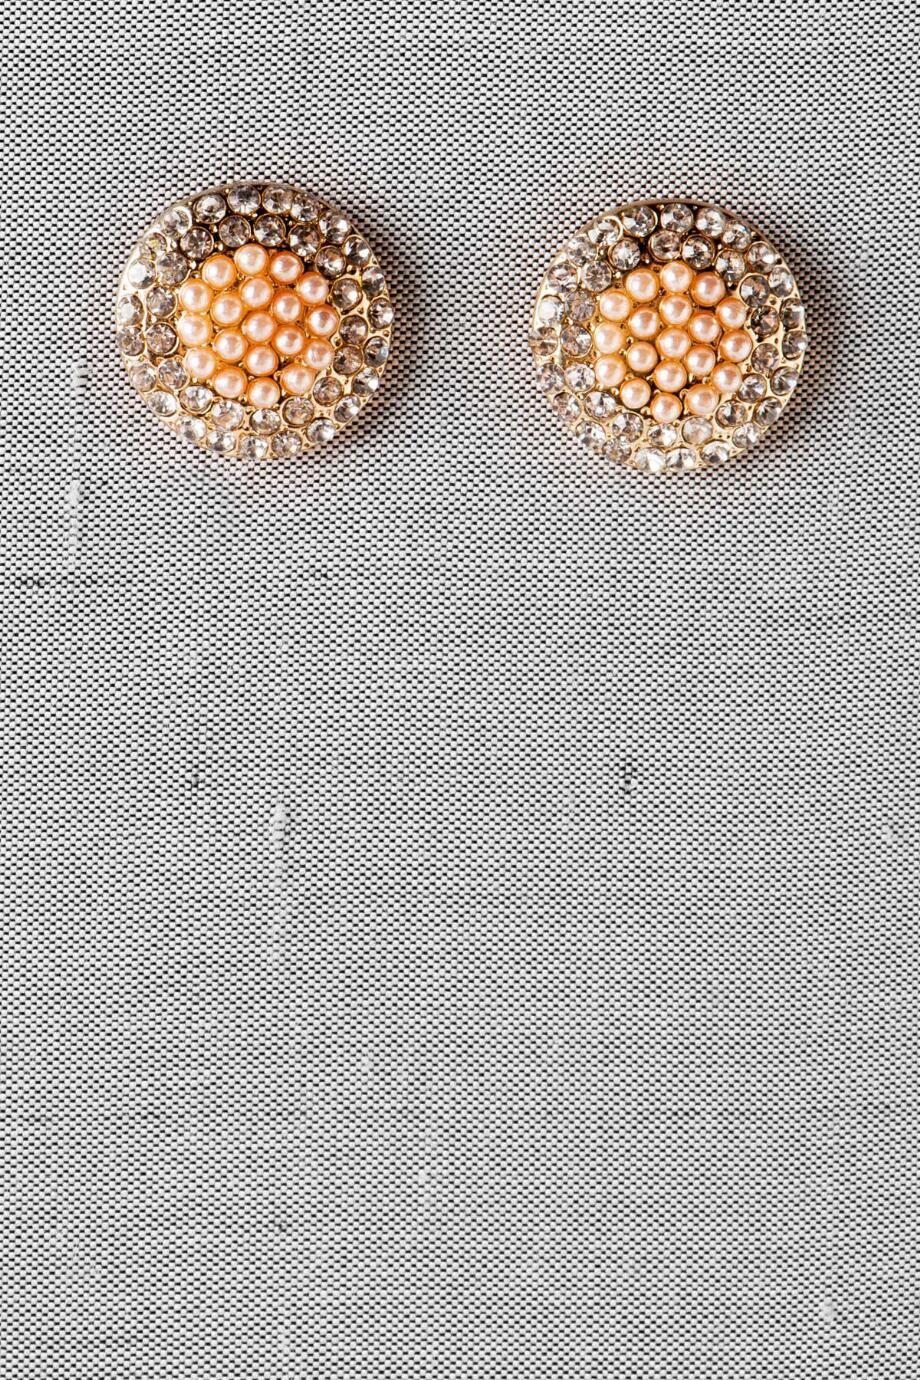 Julia Crystal Studs